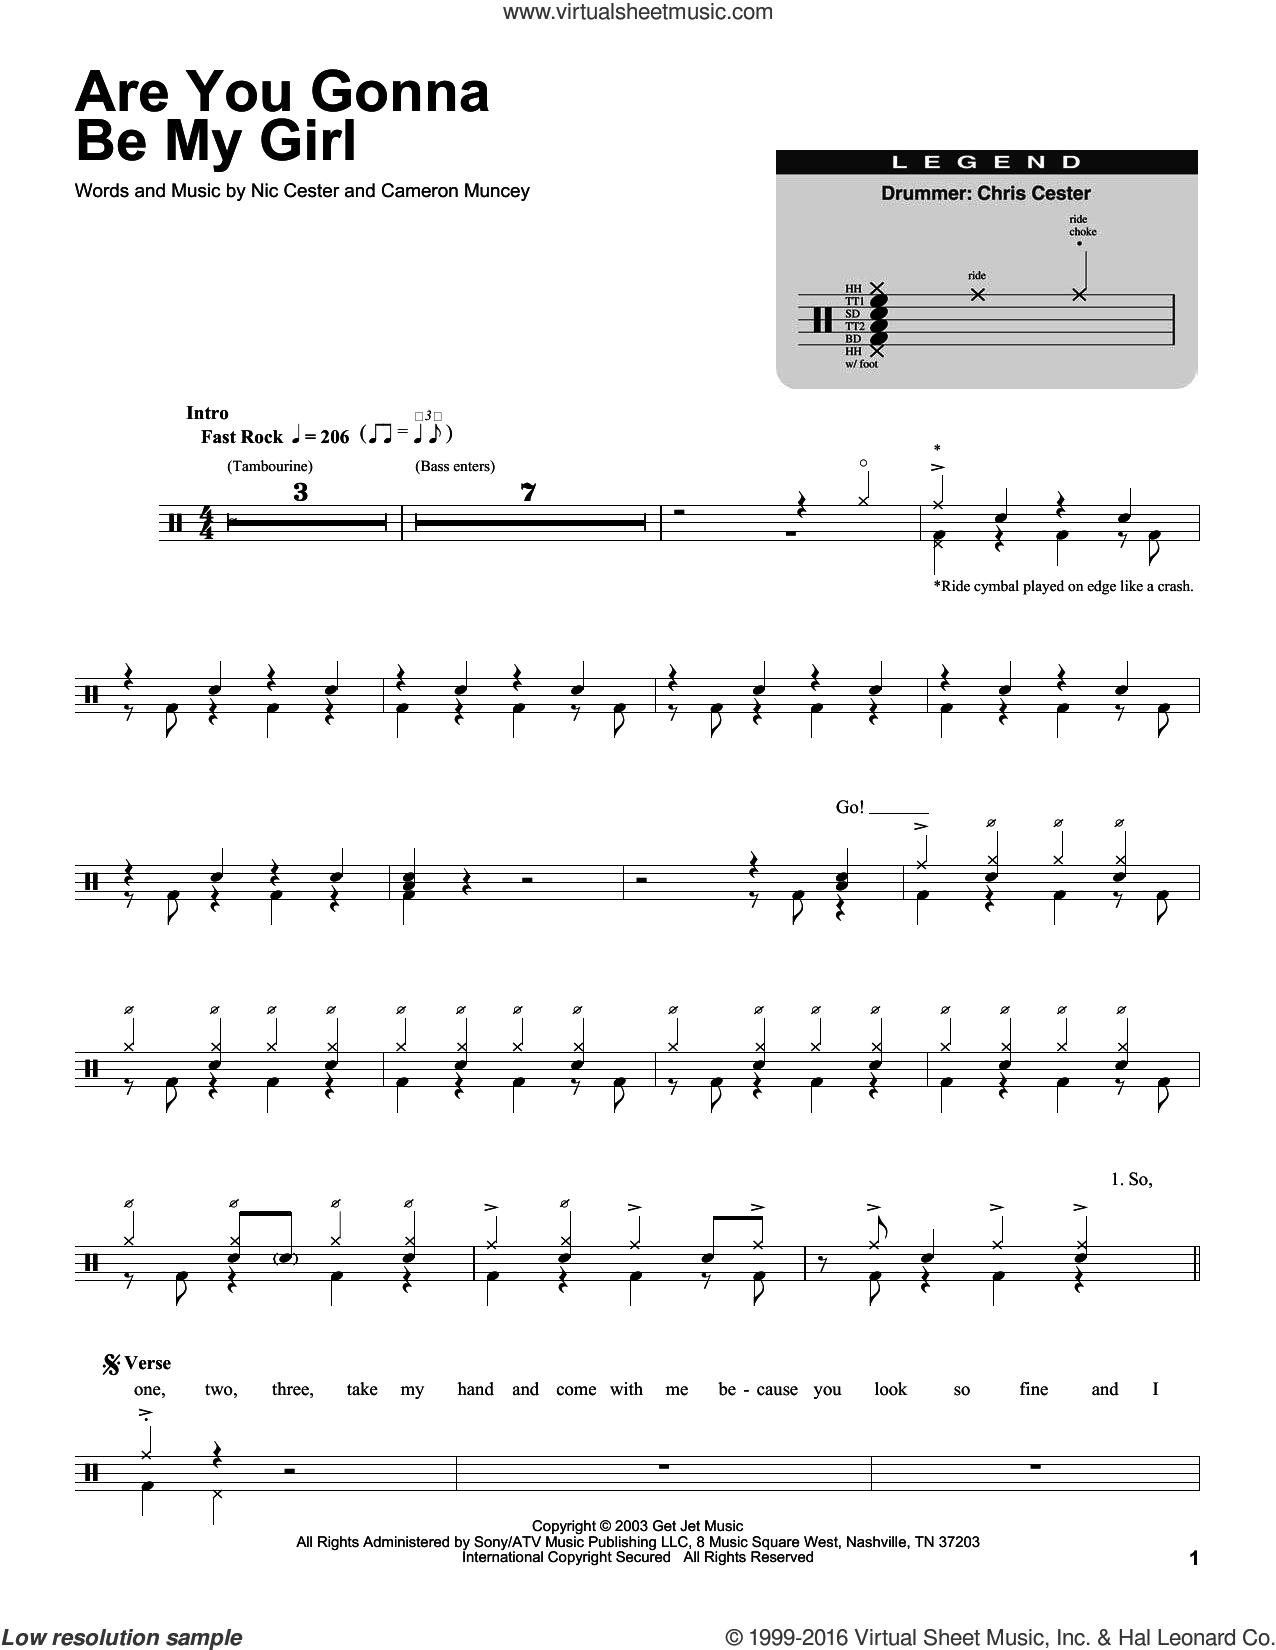 Are You Gonna Be My Girl sheet music for drums by Nic Cester. Score Image Preview.